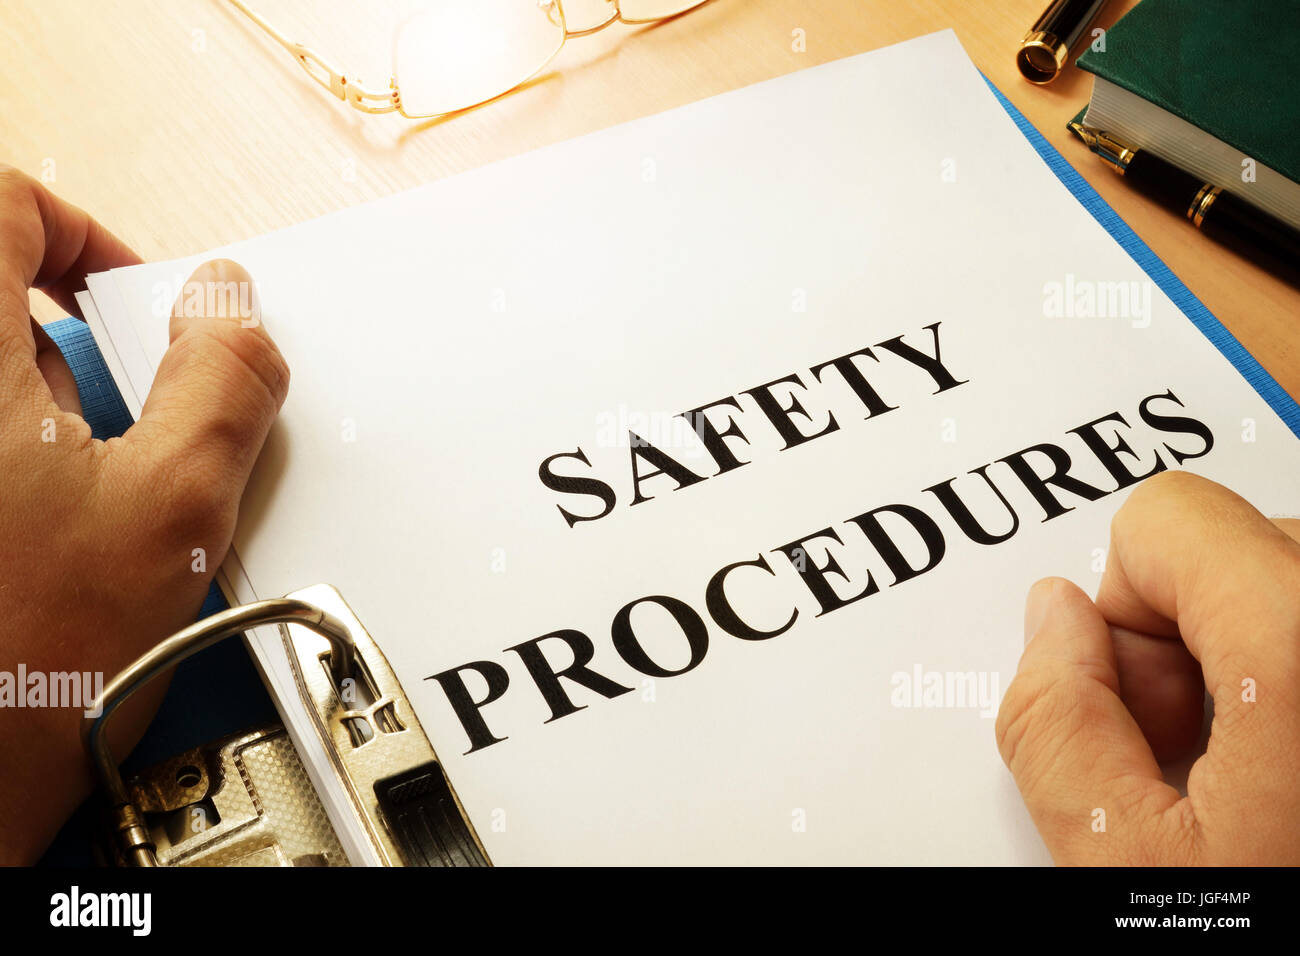 Safety procedures in a blue folder. Work Safety concept. - Stock Image